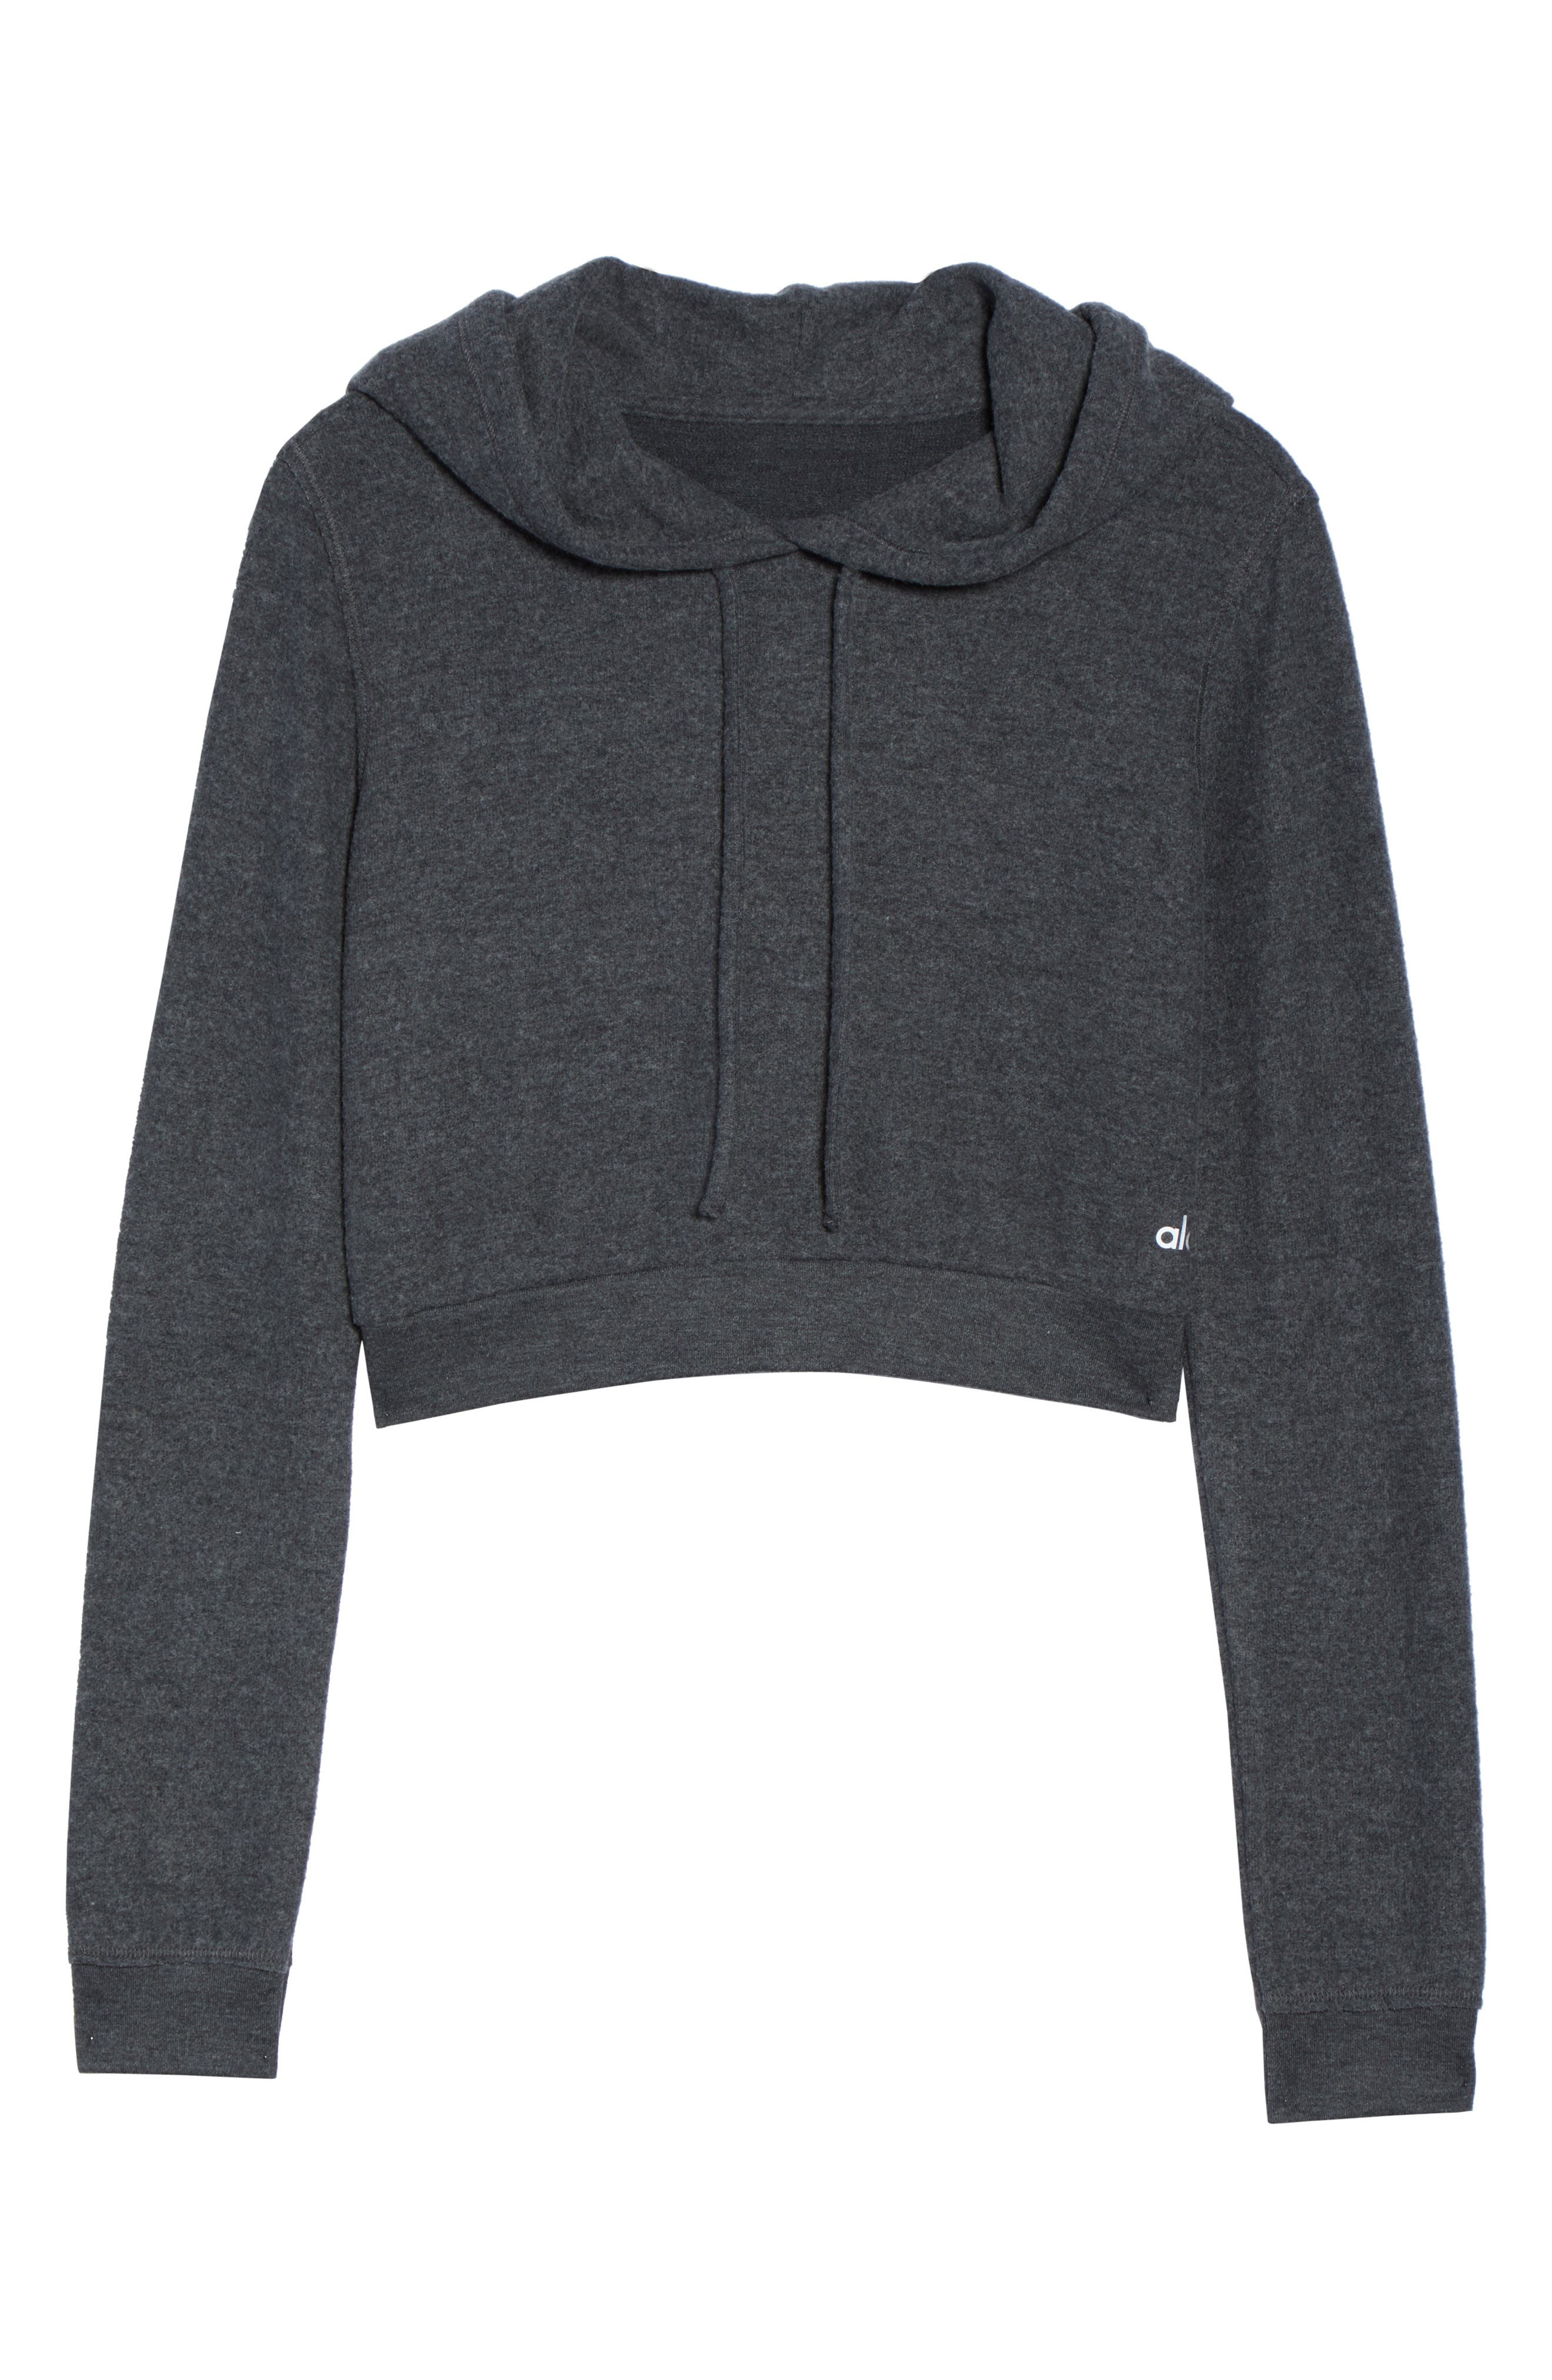 Getaway Hoodie,                             Alternate thumbnail 7, color,                             Anthracite Heather